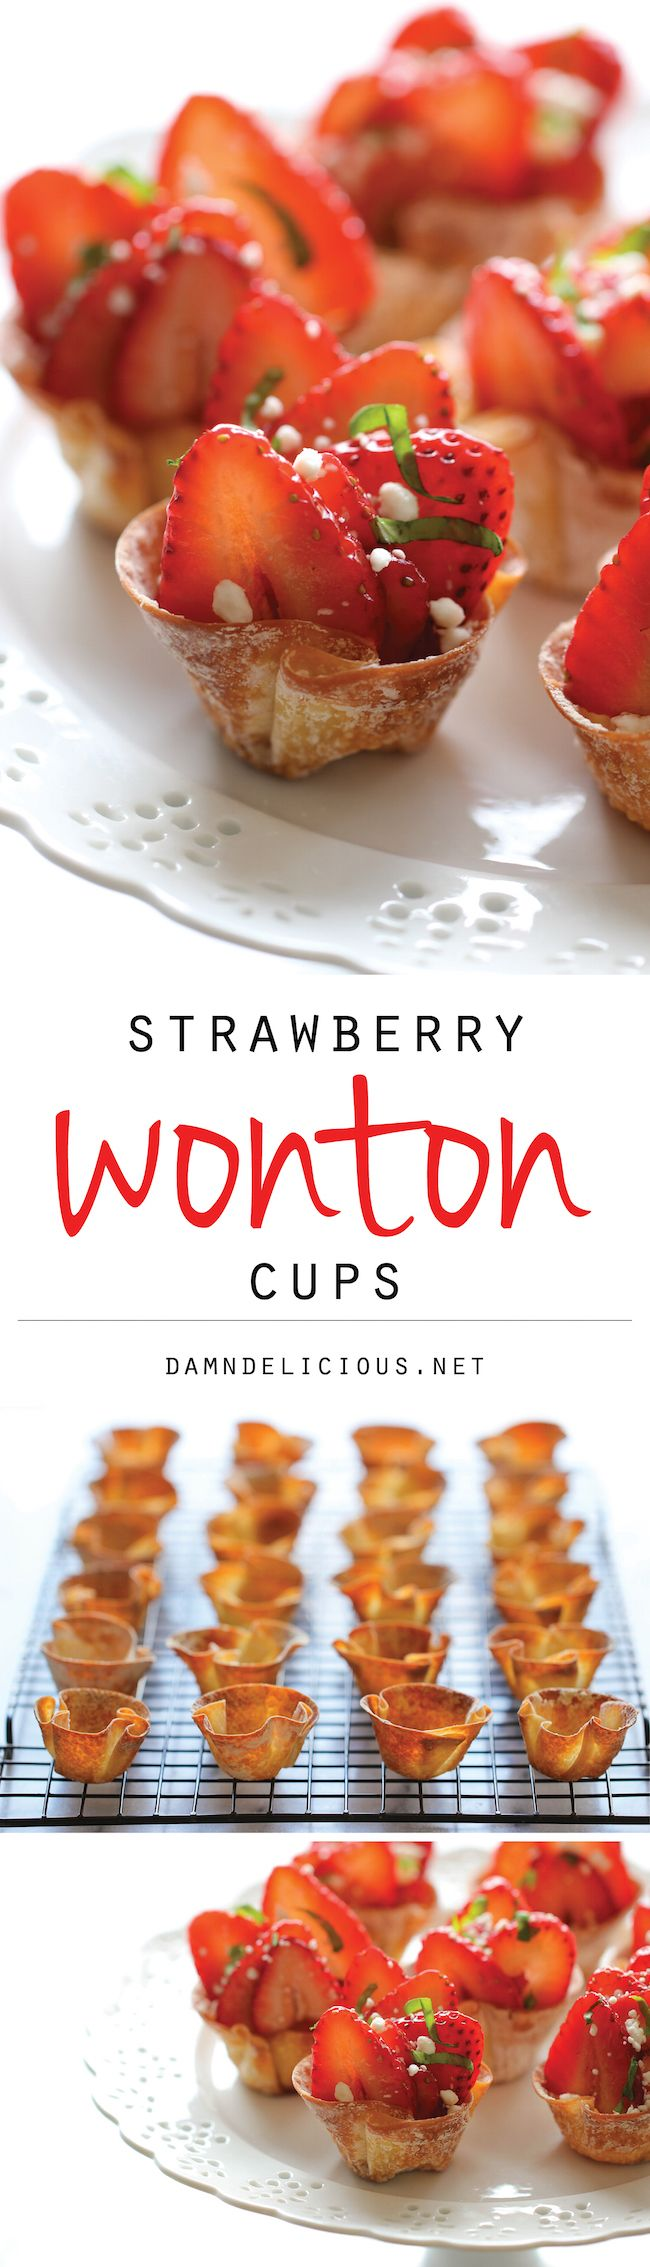 Strawberry Wonton Cups - These elegant wonton cups come together so quickly and easily, and you can even make them ahead of time. Perfect for Easter!